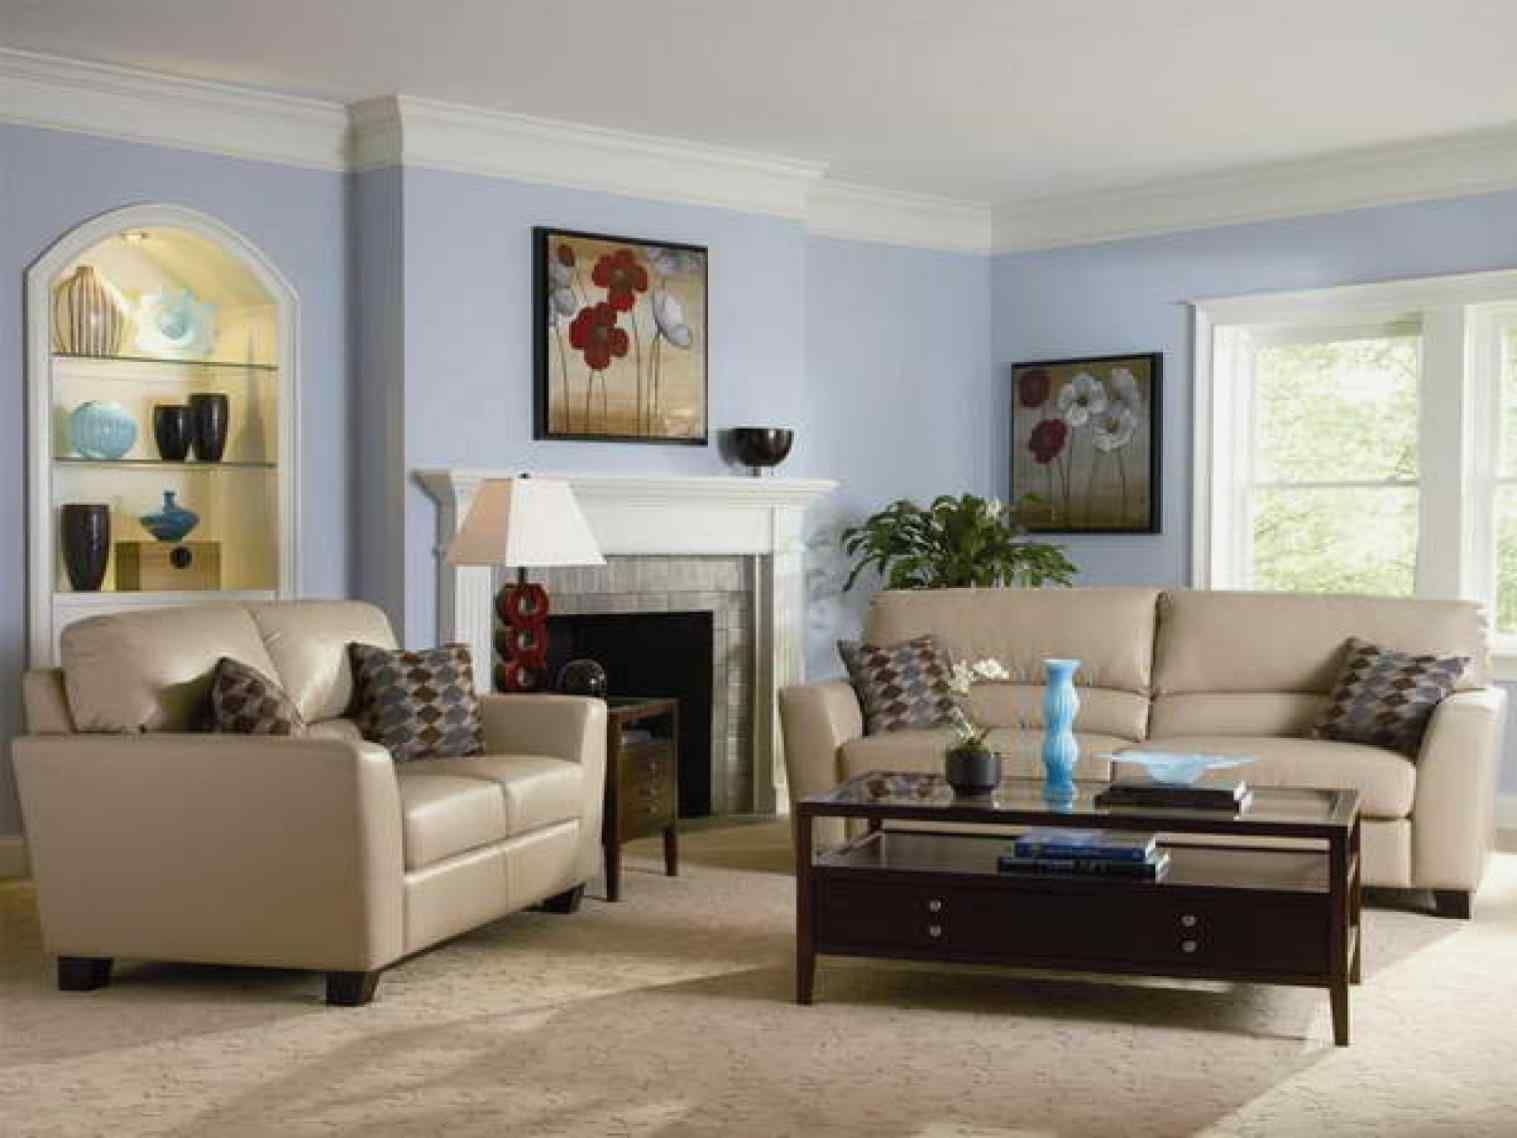 Best 14 Incredible Navy Blue And Cream Living Room Ideas Blue 400 x 300